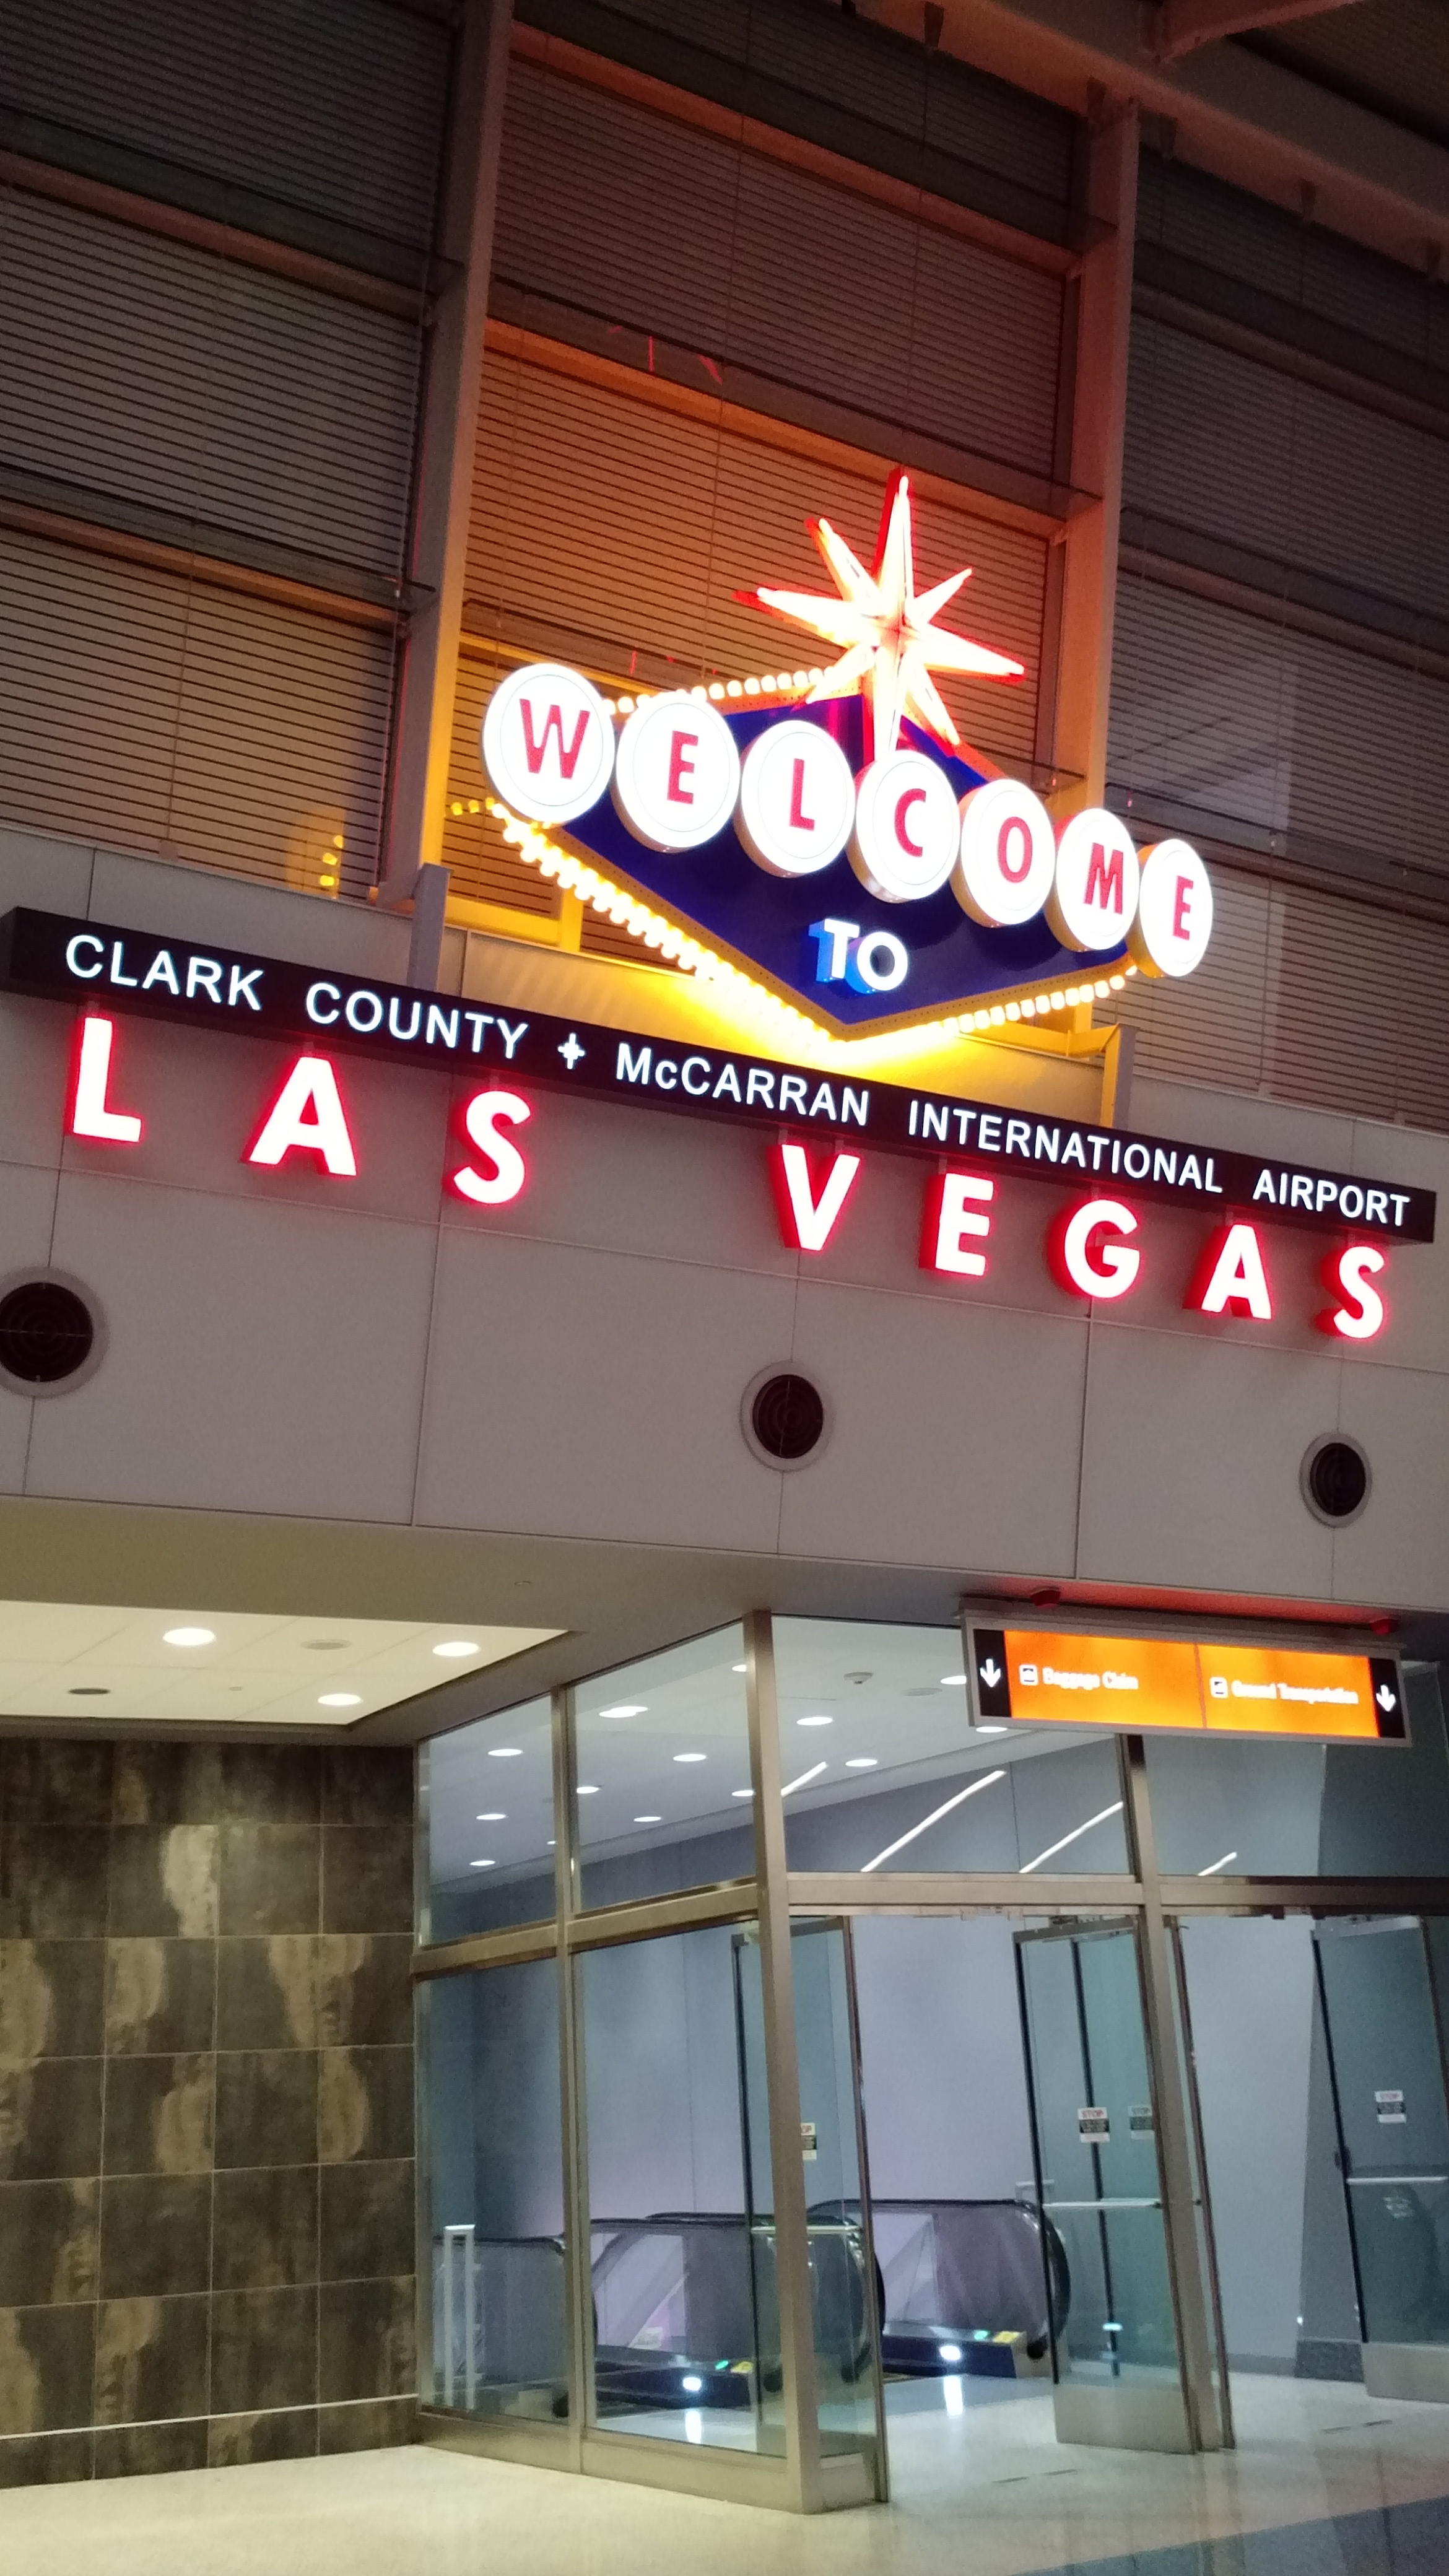 DAY 0 WELCOME TO LAS VEGAS AIRPORT